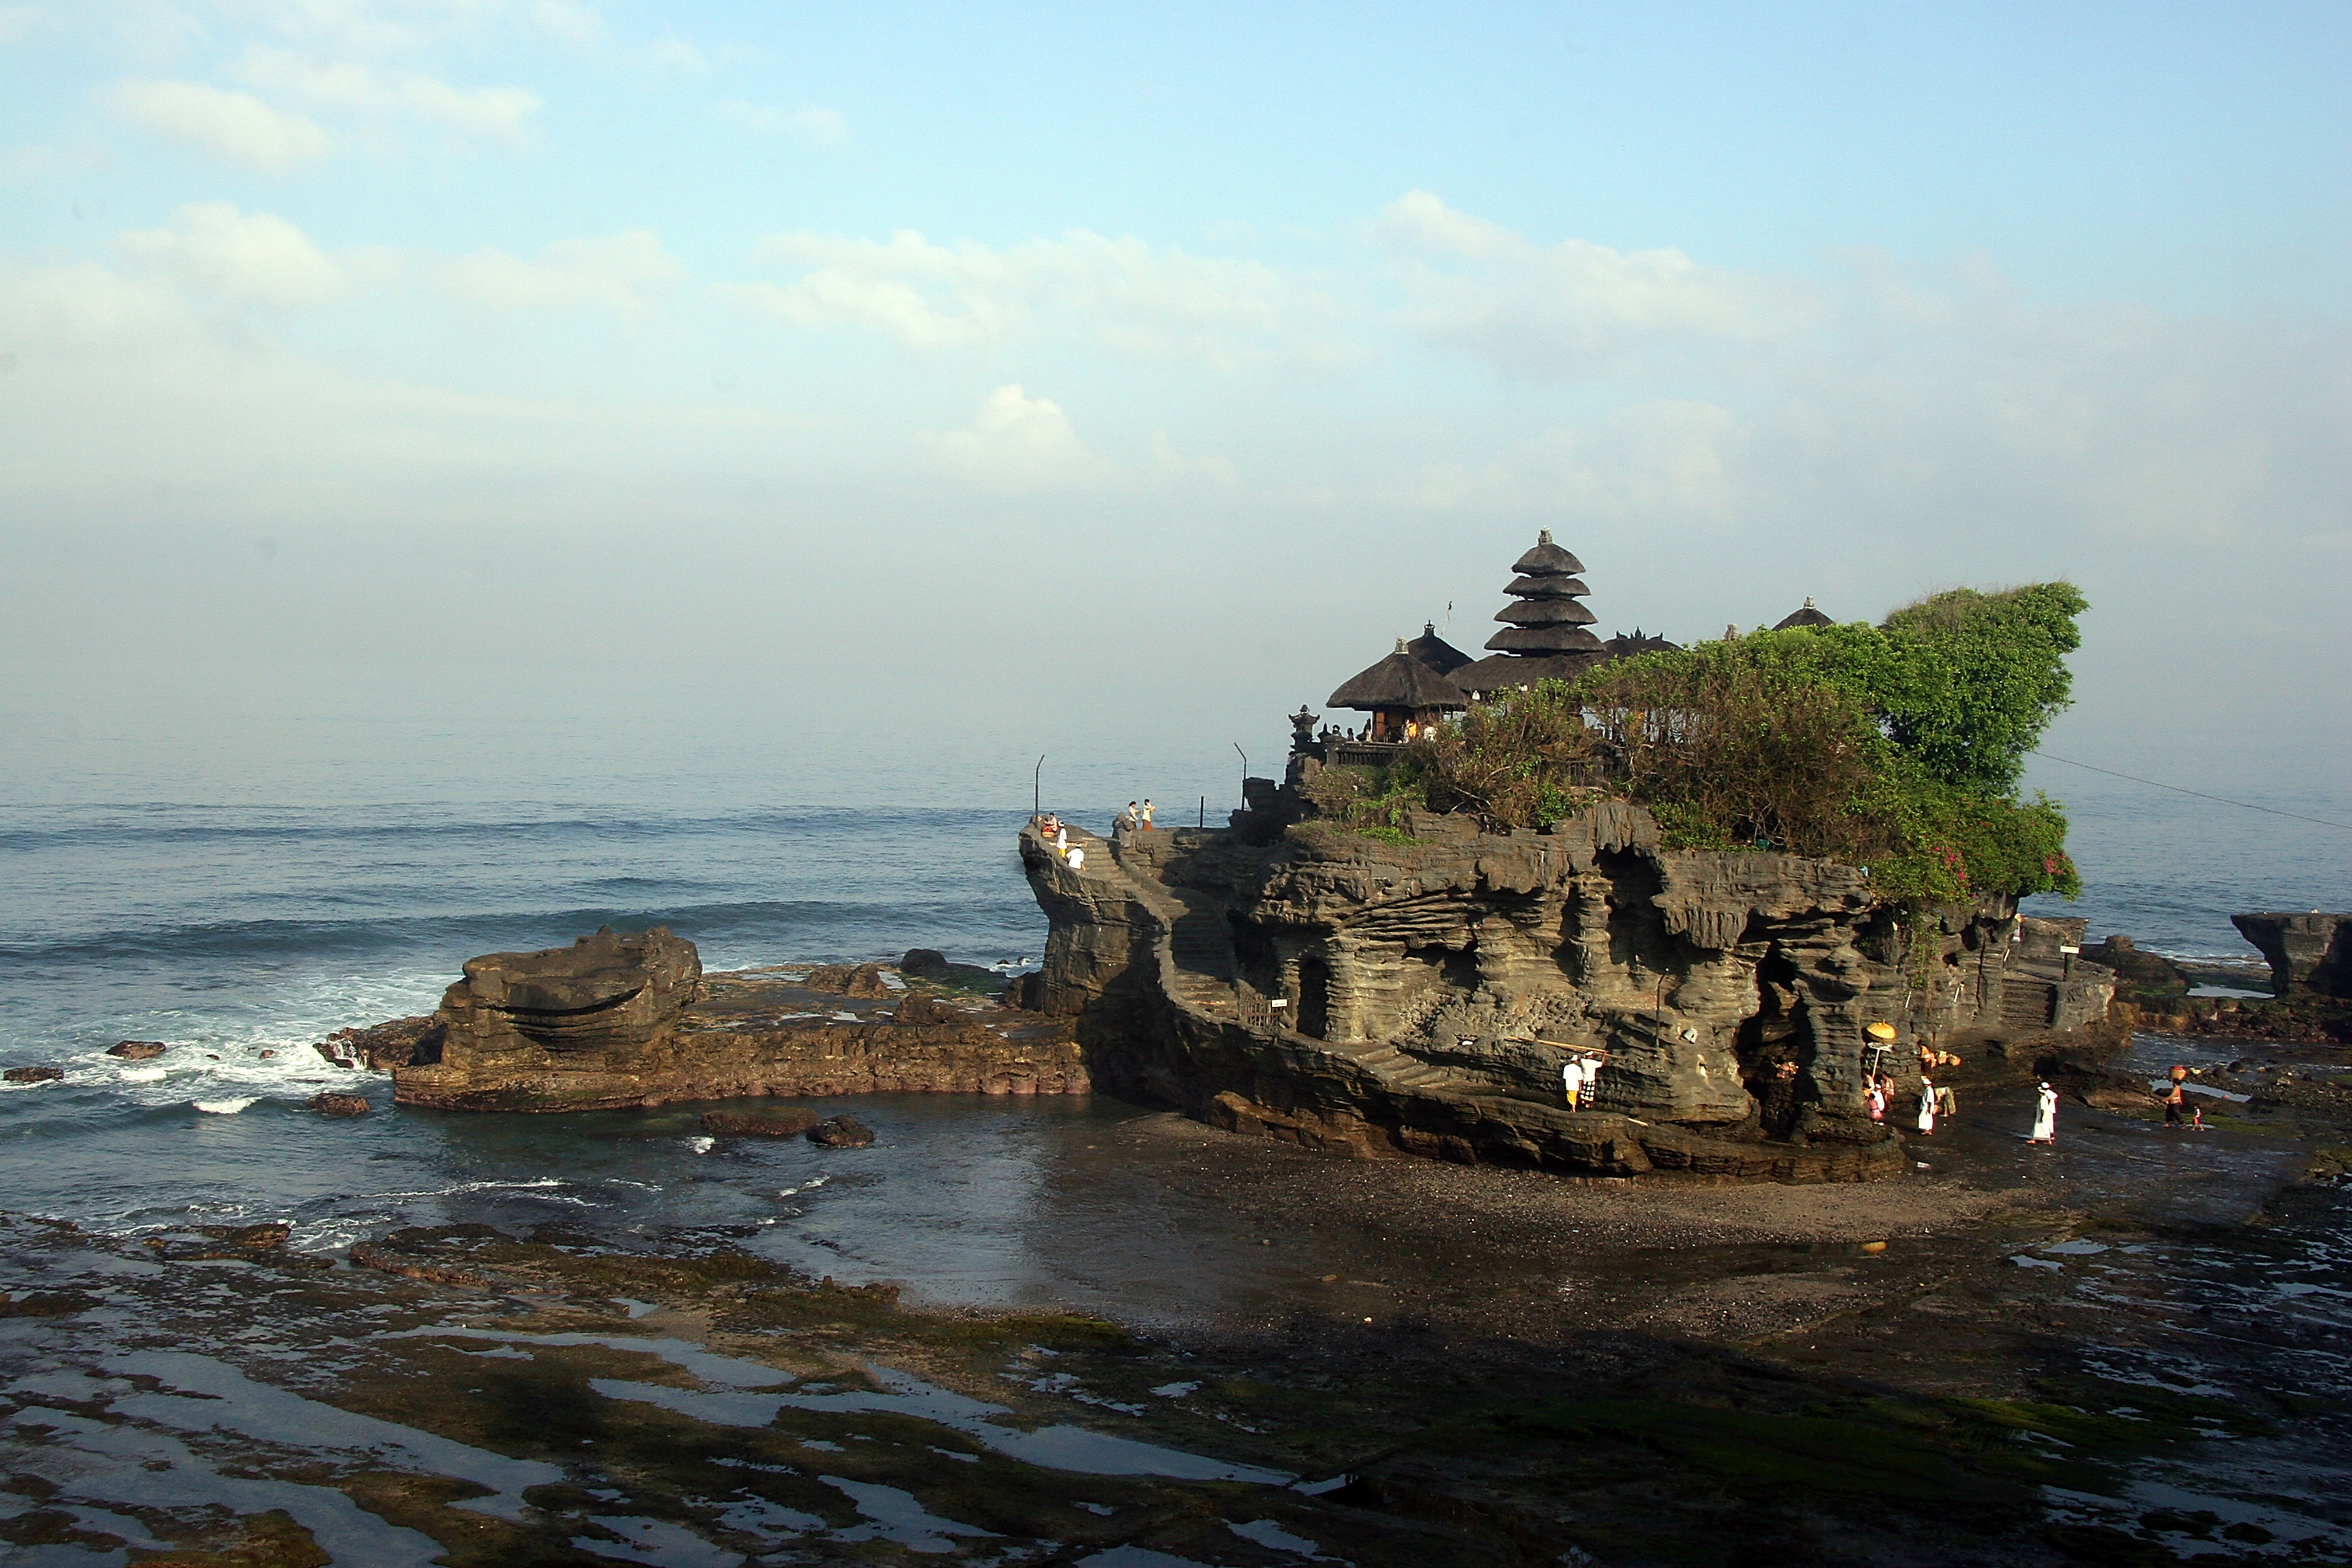 Tanahlot temple, Bali Indonesia 5.jpg - Indonesia Bali Tanahlot temple